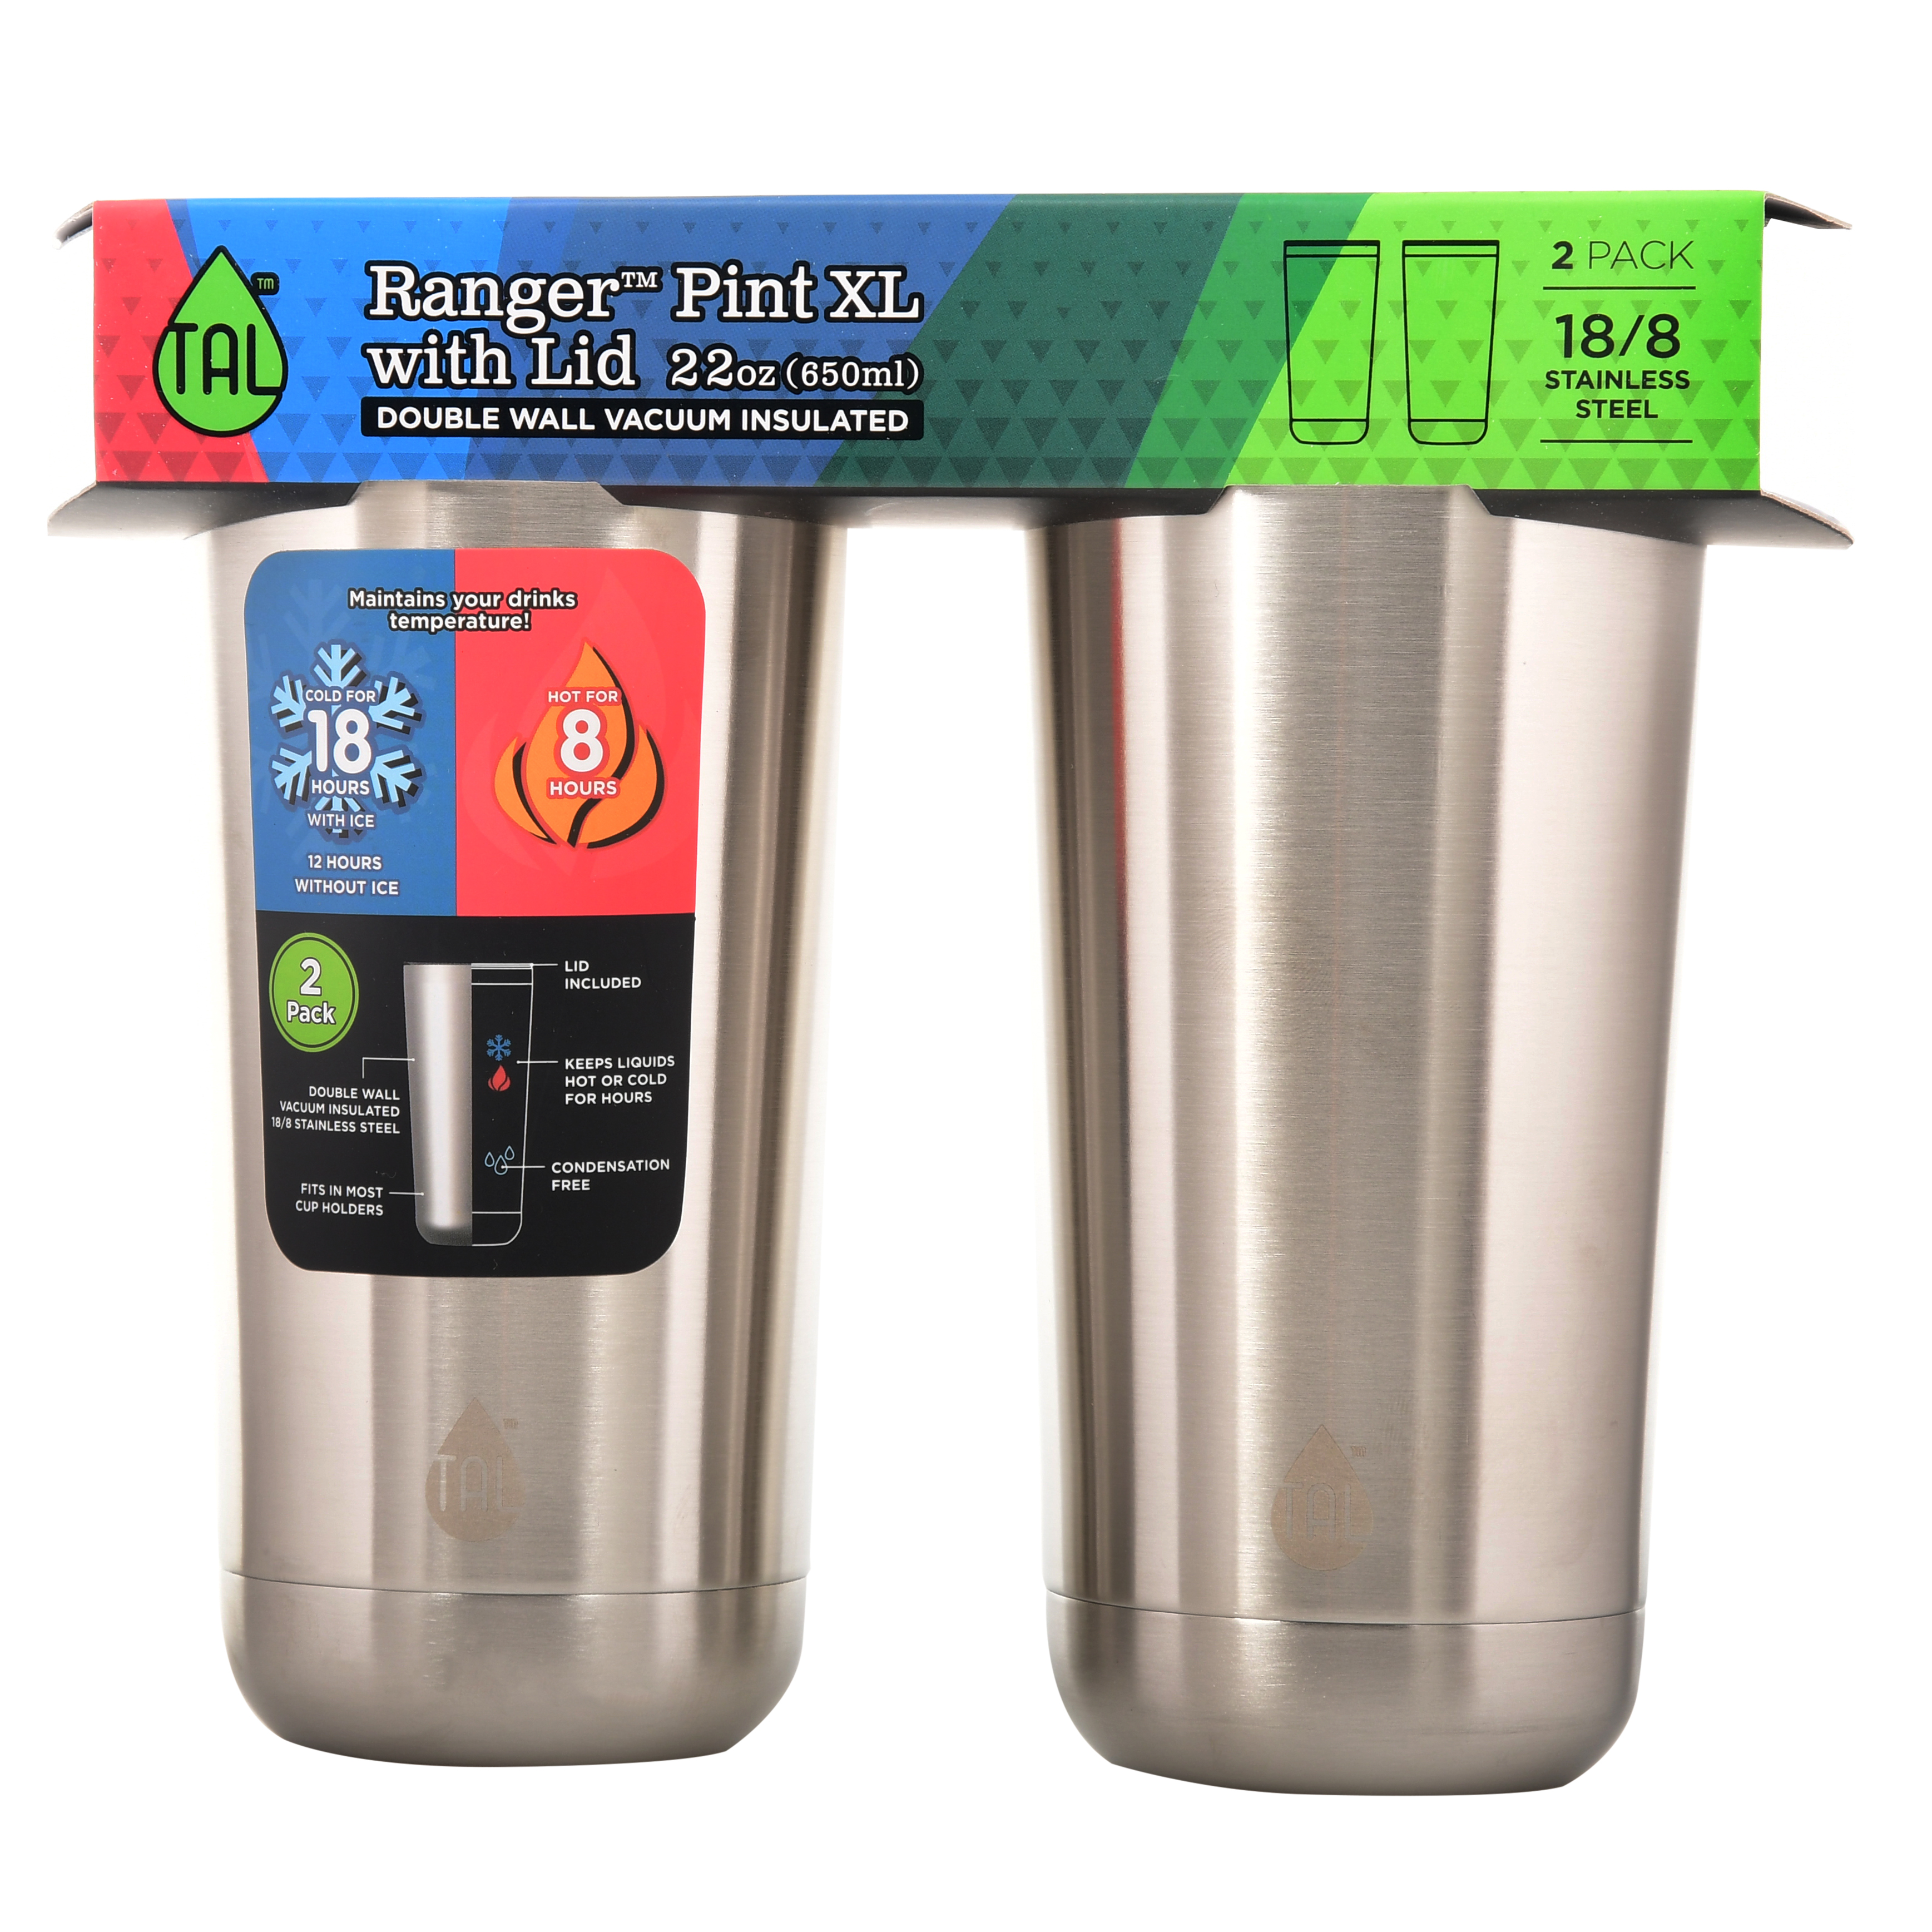 TAL 2 Pack 22oz Stainless Steel Double Wall Vacuum Insulated Ranger™ Pint XL